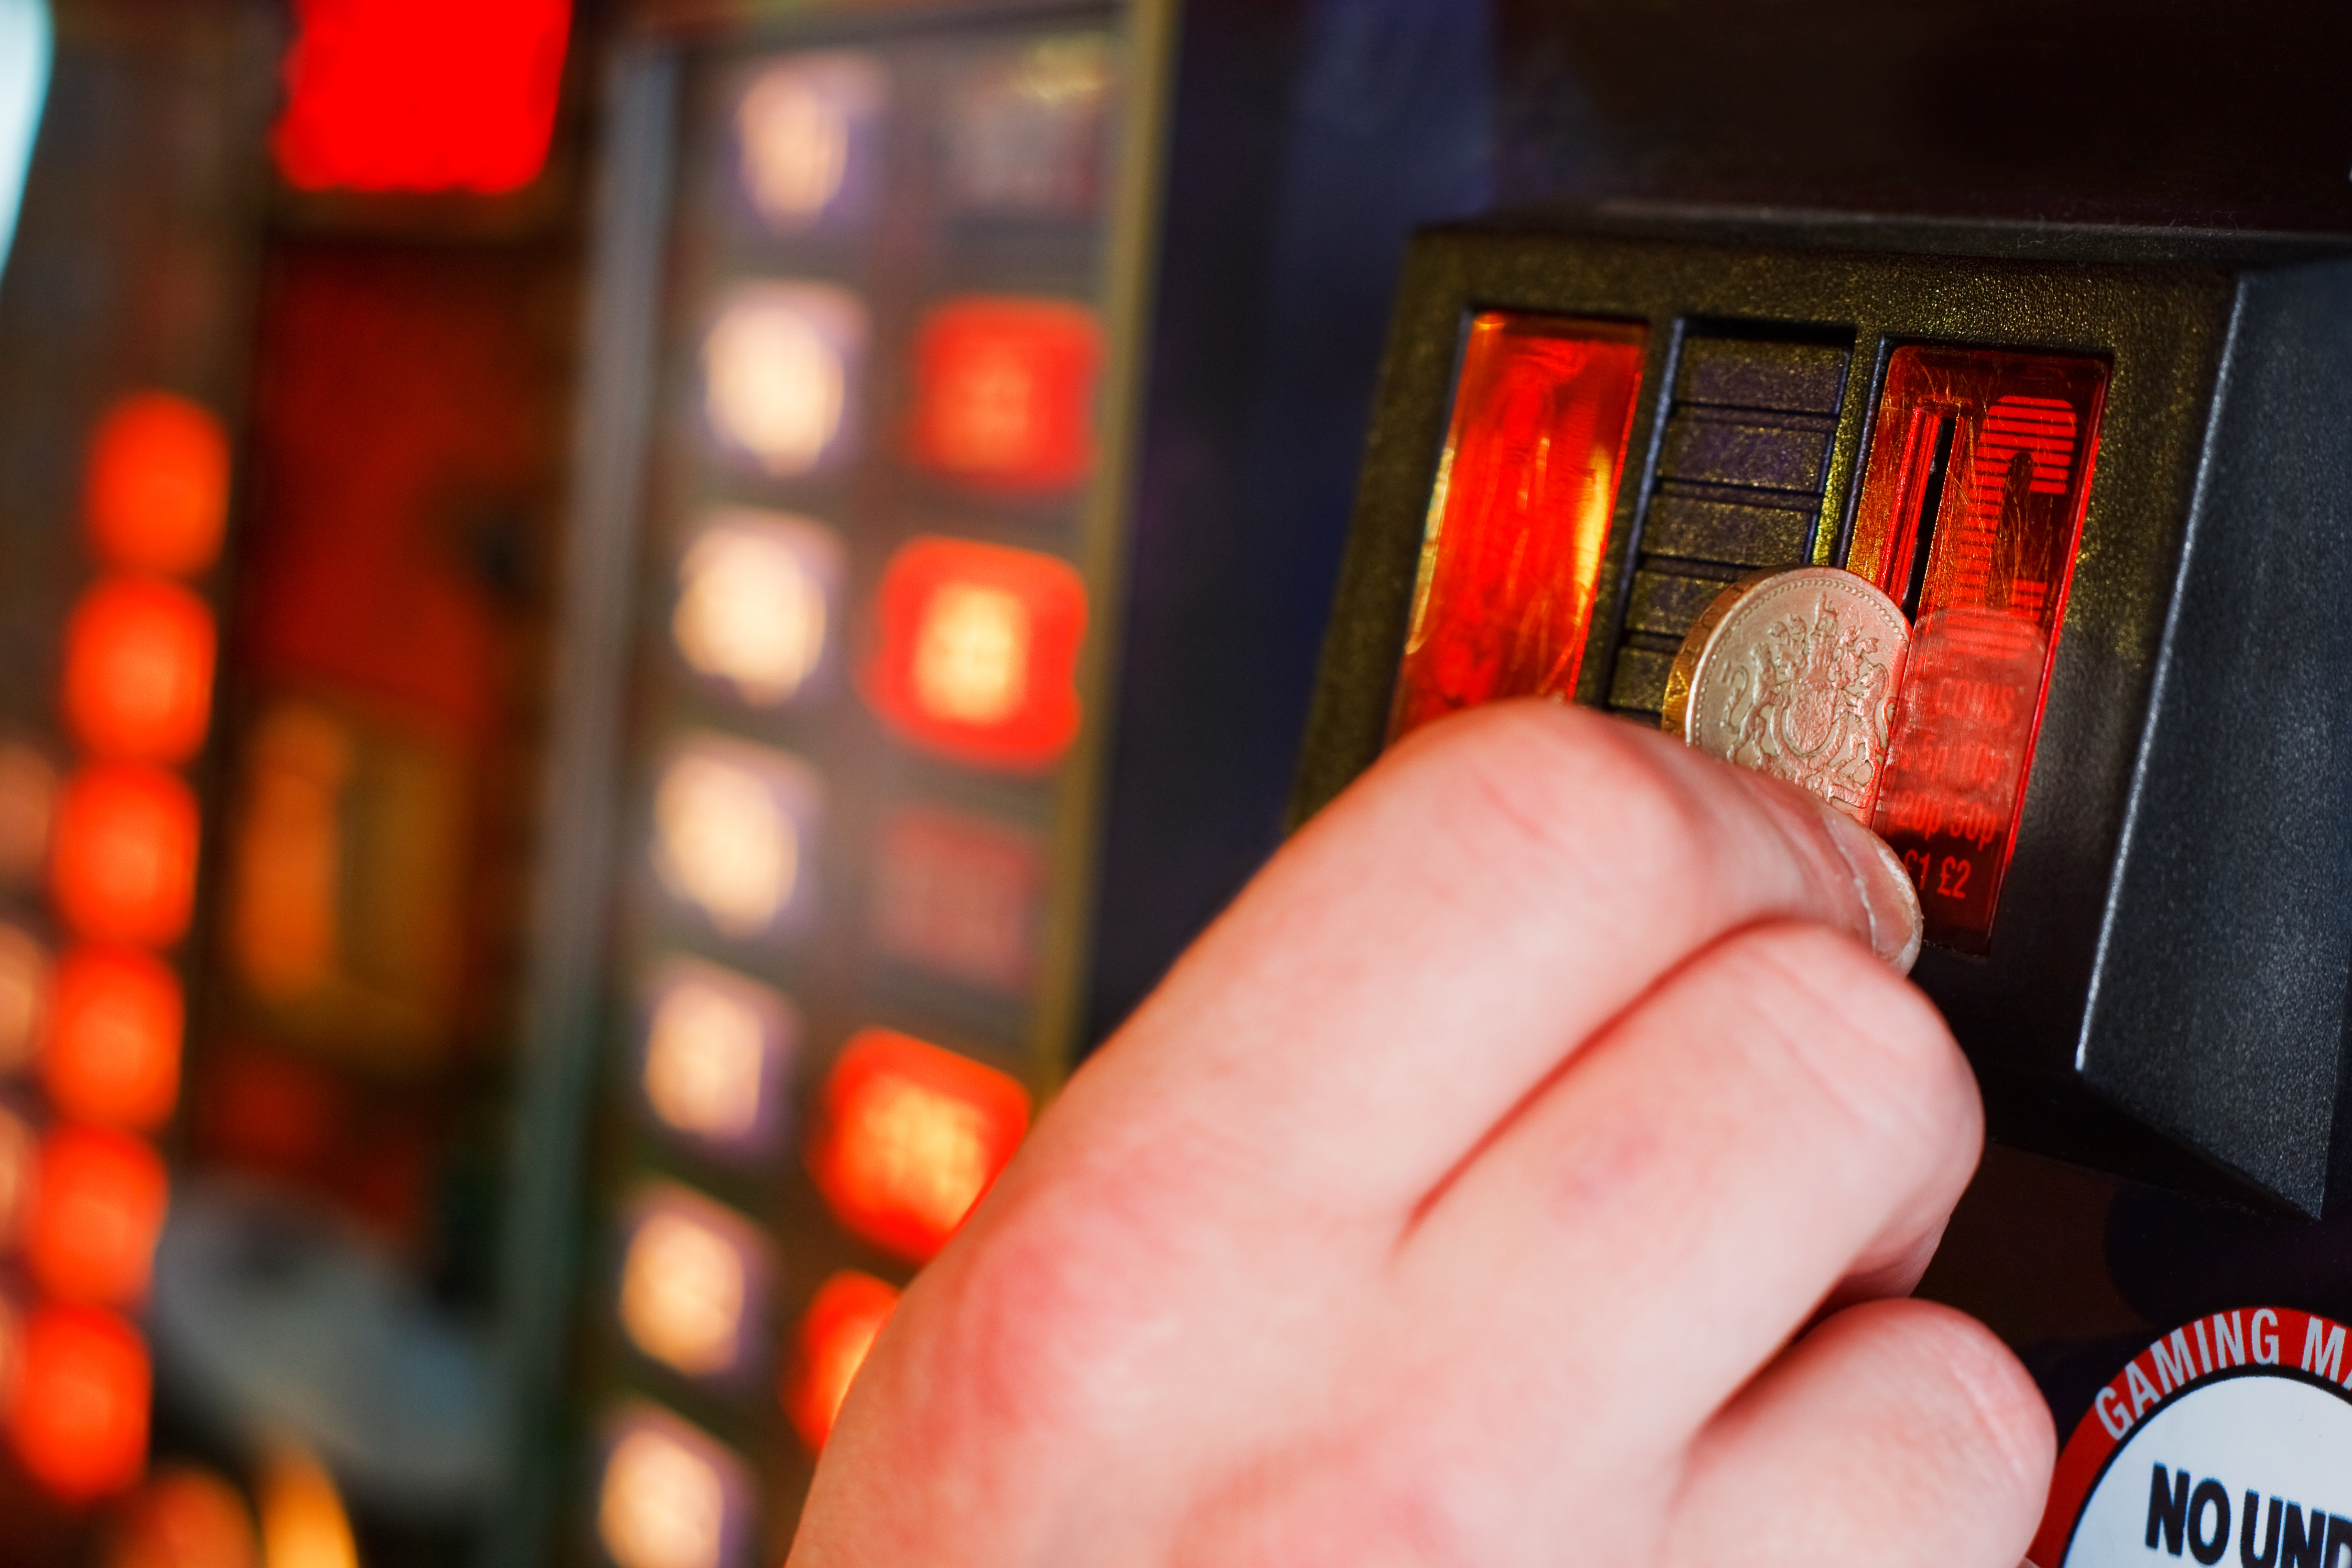 hand putting pound coin into fruit machine